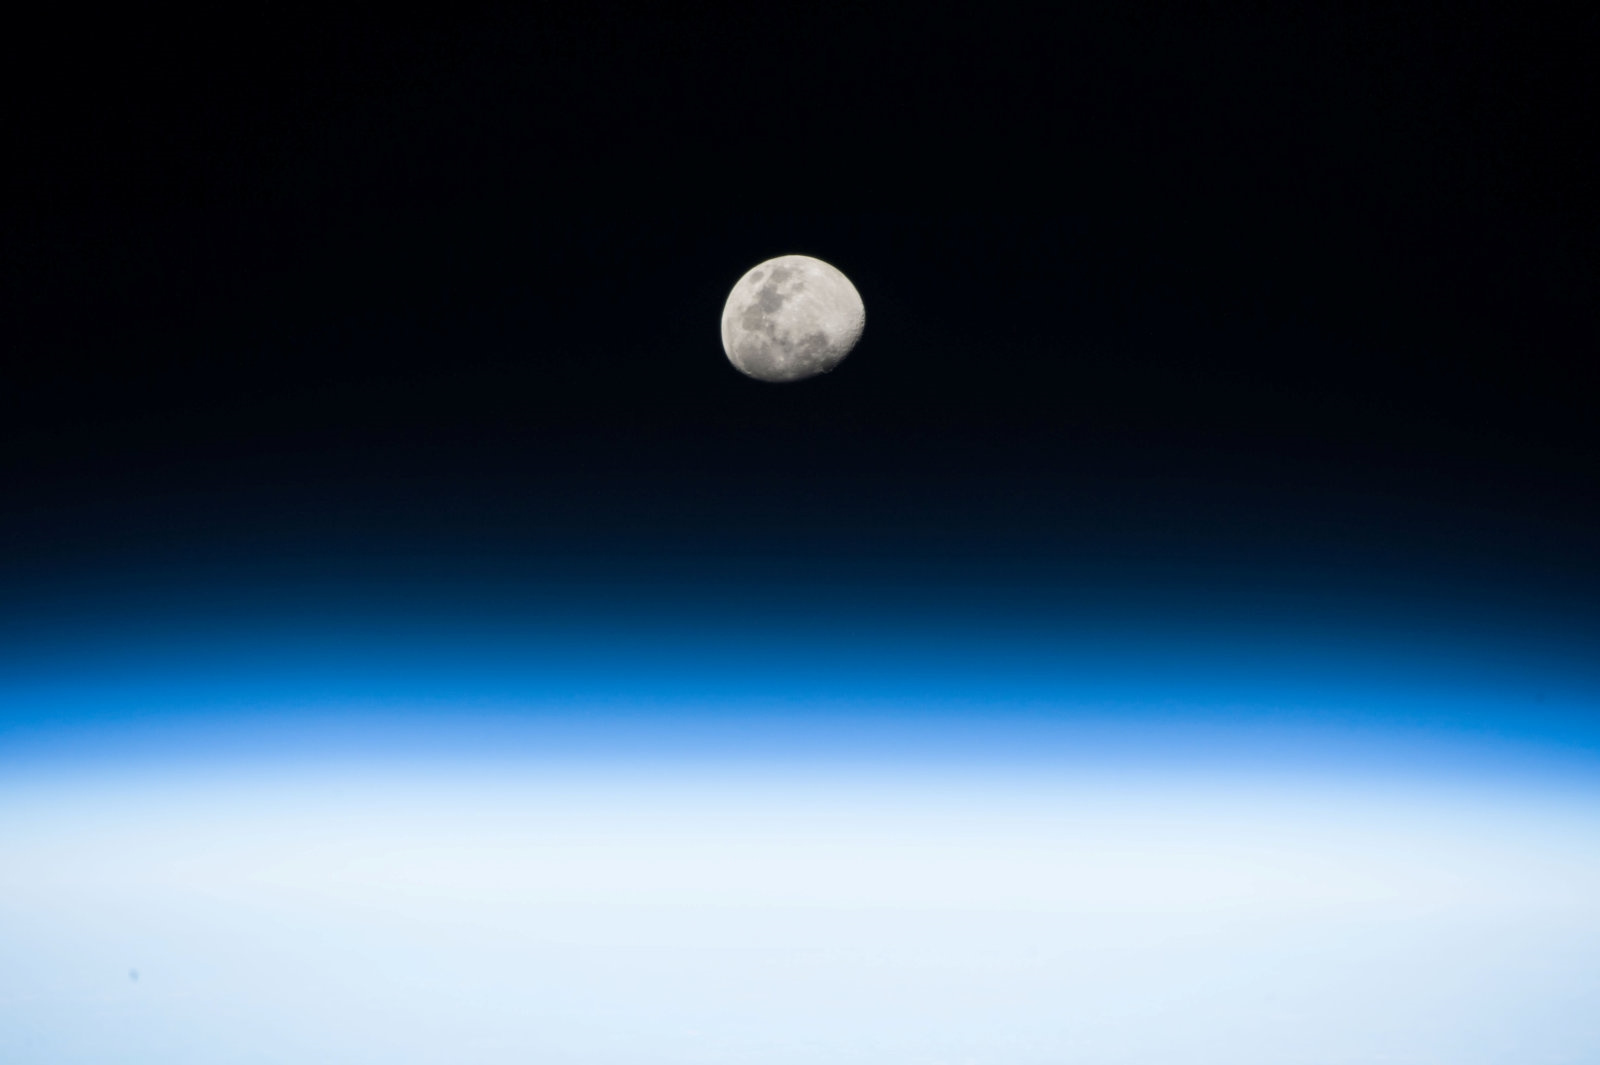 VP Pence wants US astronauts back on the Moon by 2024 | DeviceDaily.com